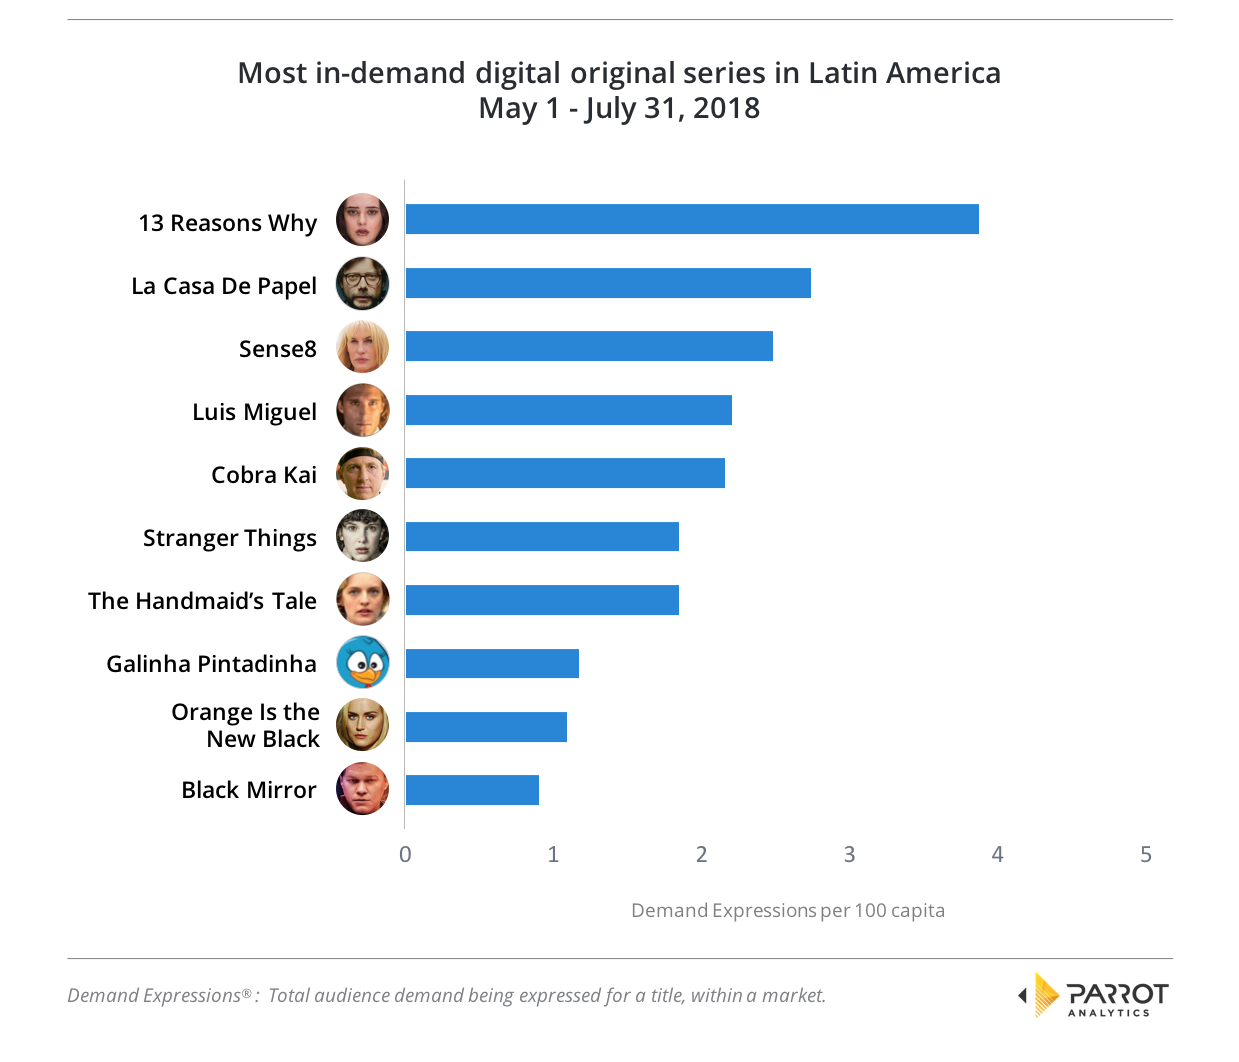 Latin America: Audience demand for digital originals and top